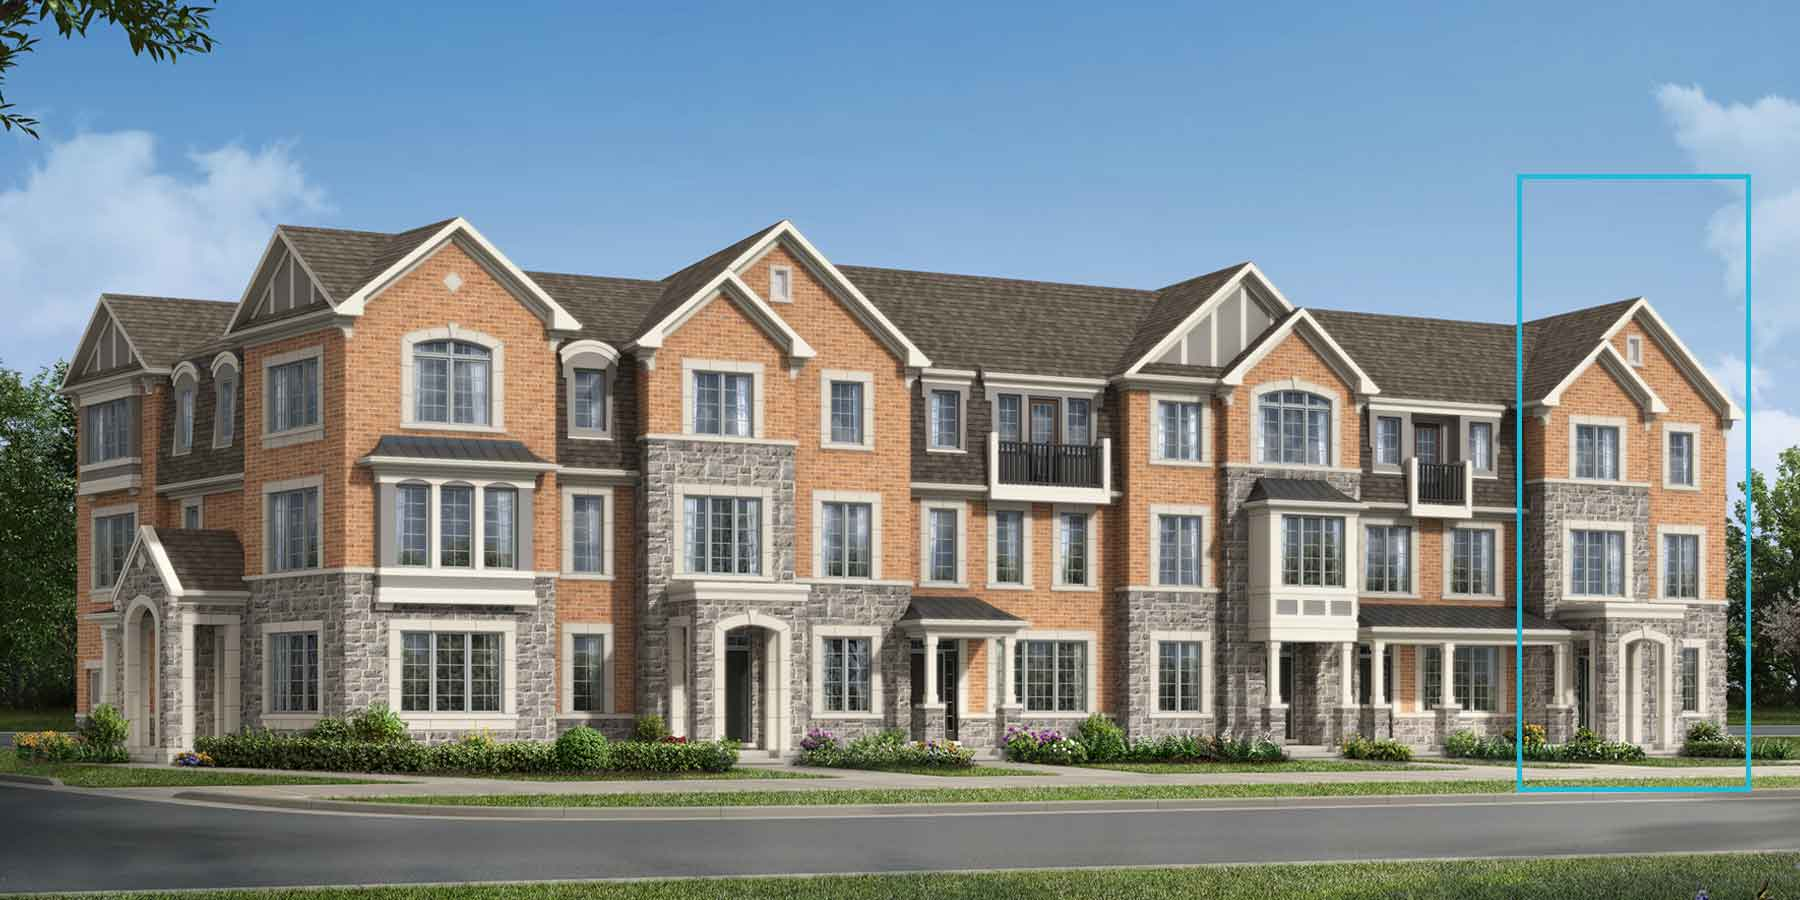 Windfield Plan elevationenglishmanor_joshuacreek_chestnuteastend at Upper Joshua Creek in Oakville Ontario by Mattamy Homes